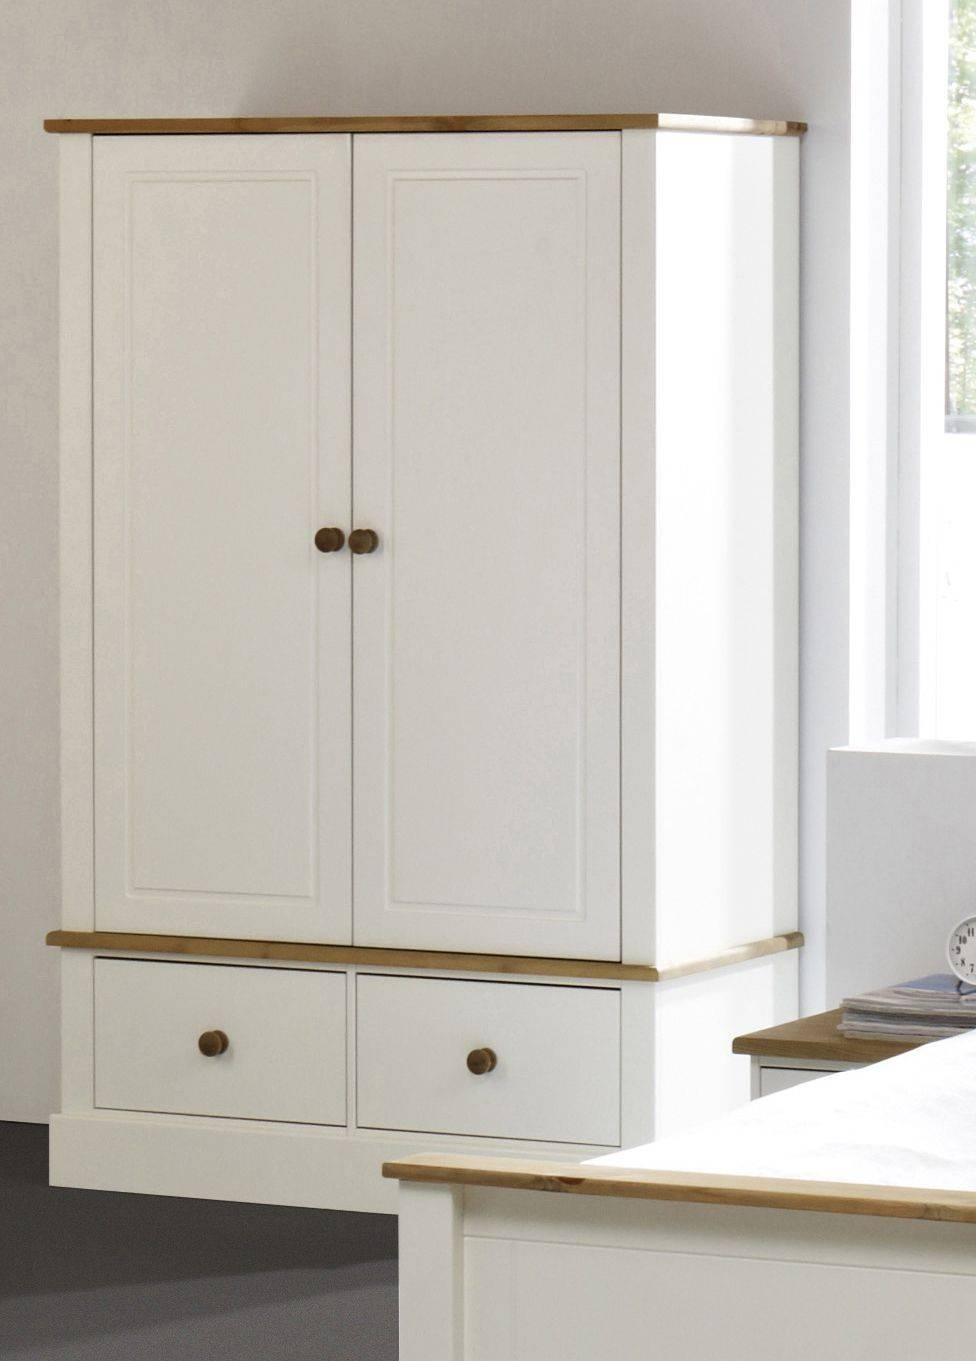 Balmoral White Double Wardrobe With 2 Drawers | Bedroom Furniture within Double Wardrobes (Image 1 of 15)